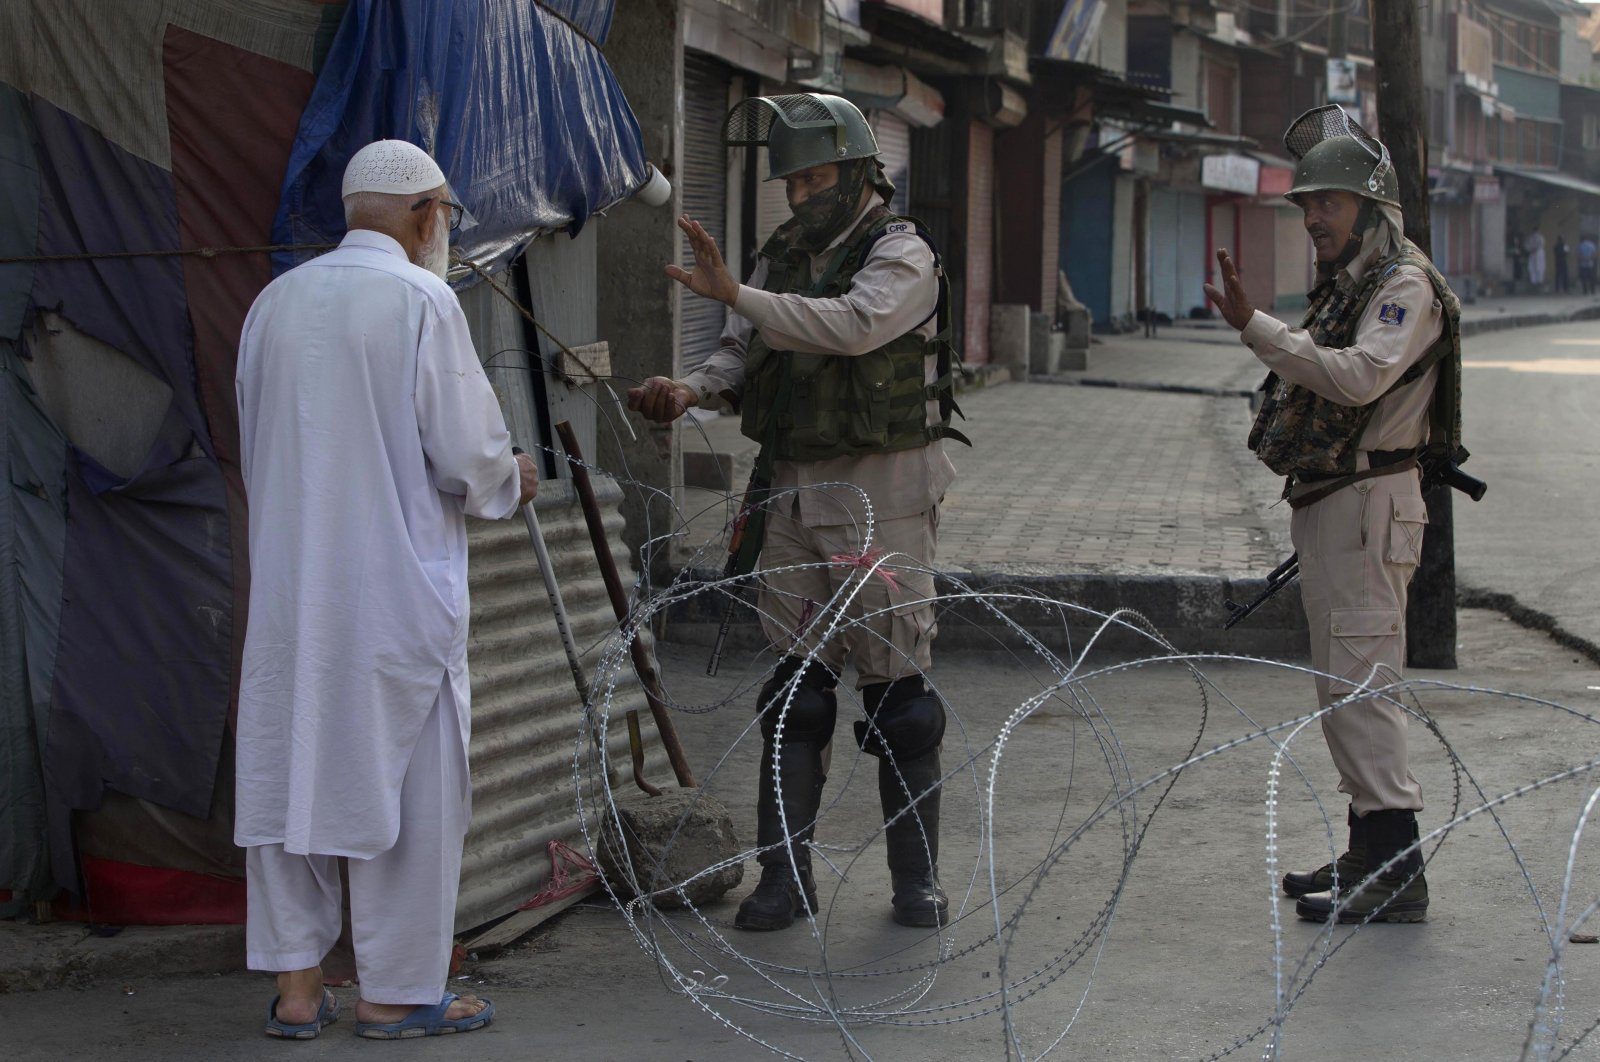 An elderly Kashmiri man is stopped before being allowed to pass near a temporary checkpoint set up by Indian paramilitary soldiers during lockdown in Srinagar, Indian controlled Kashmir, Friday, Aug. 23, 2019. (AP Photo)